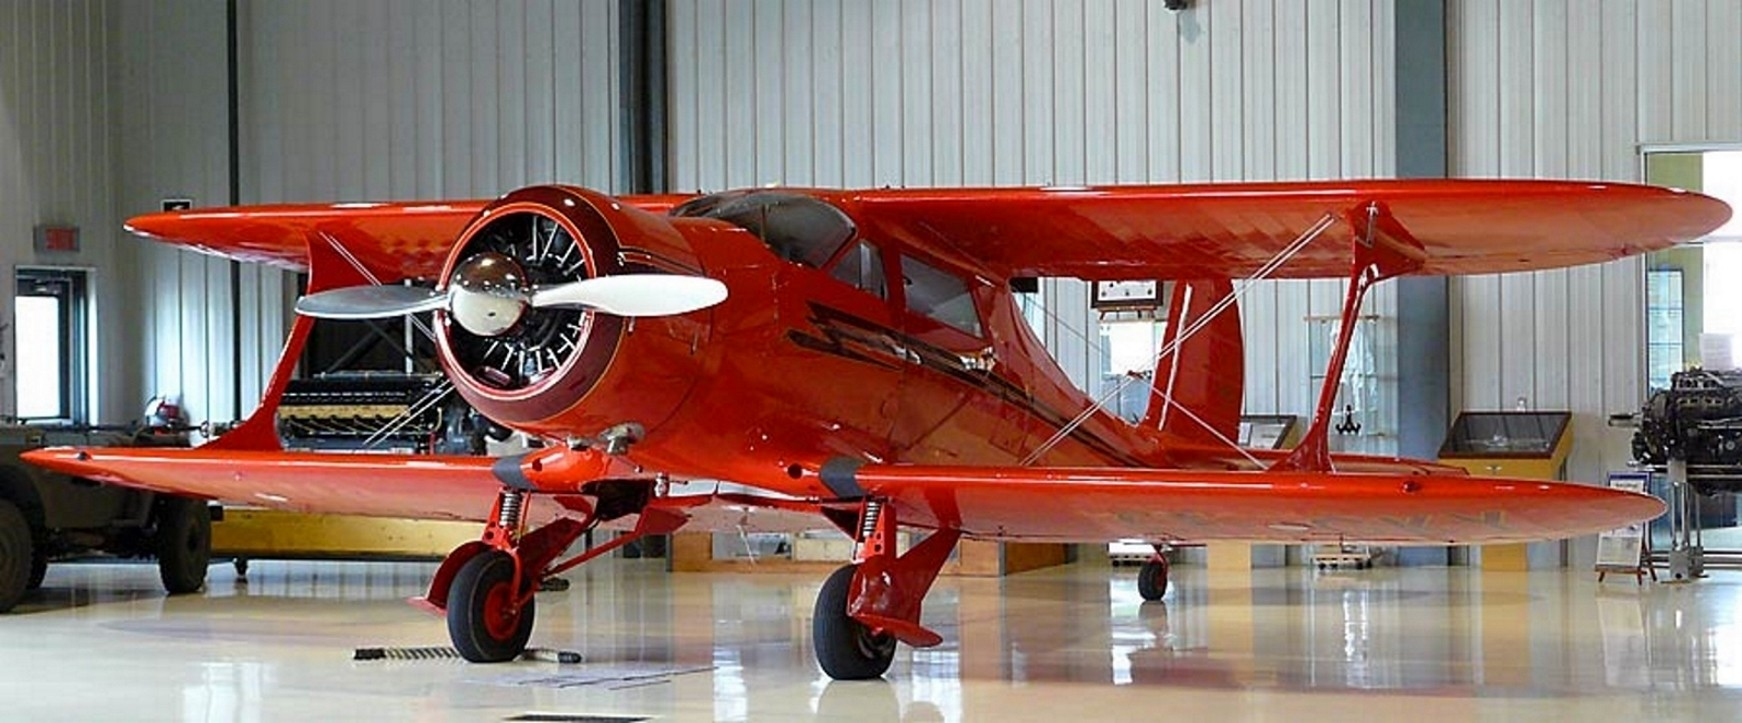 Beechcraft Staggerwing D-17